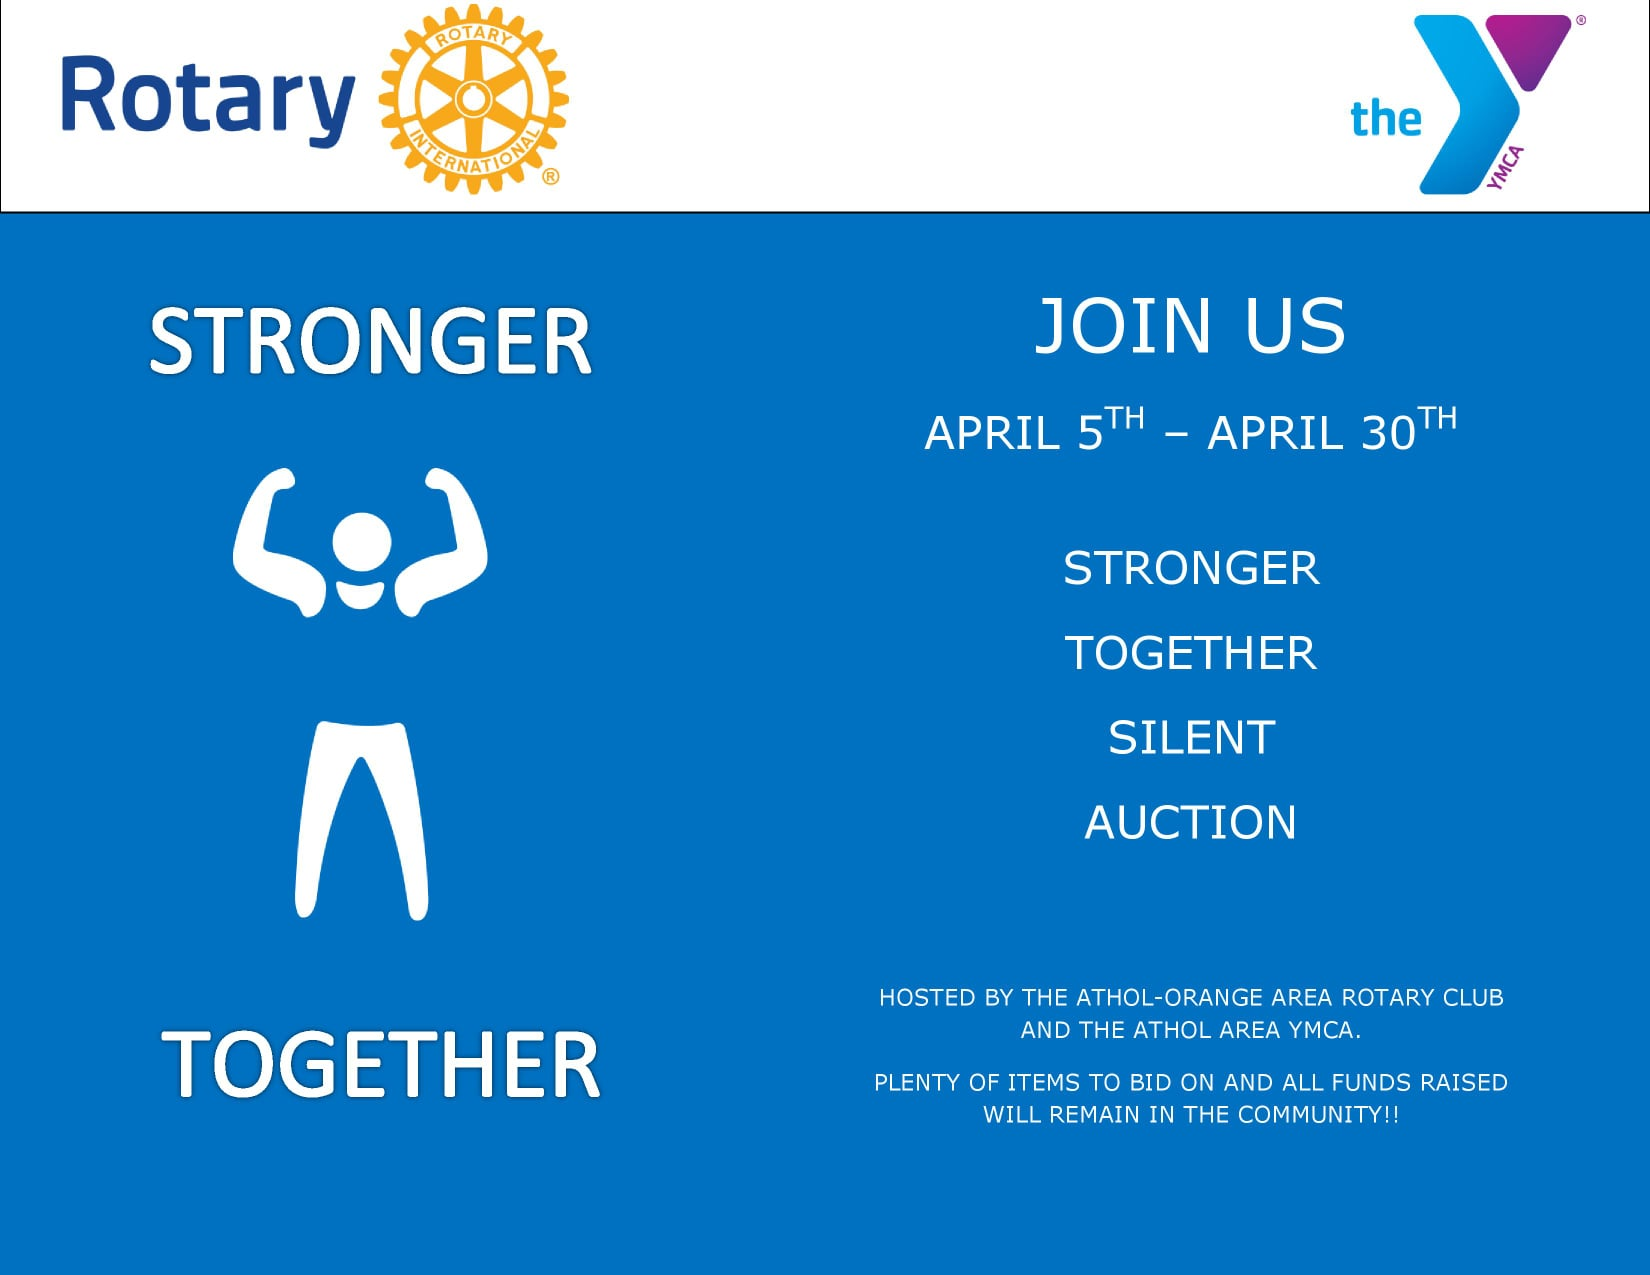 Stronger Together Auction co-hosted with the Athol-Orange Rotary Club